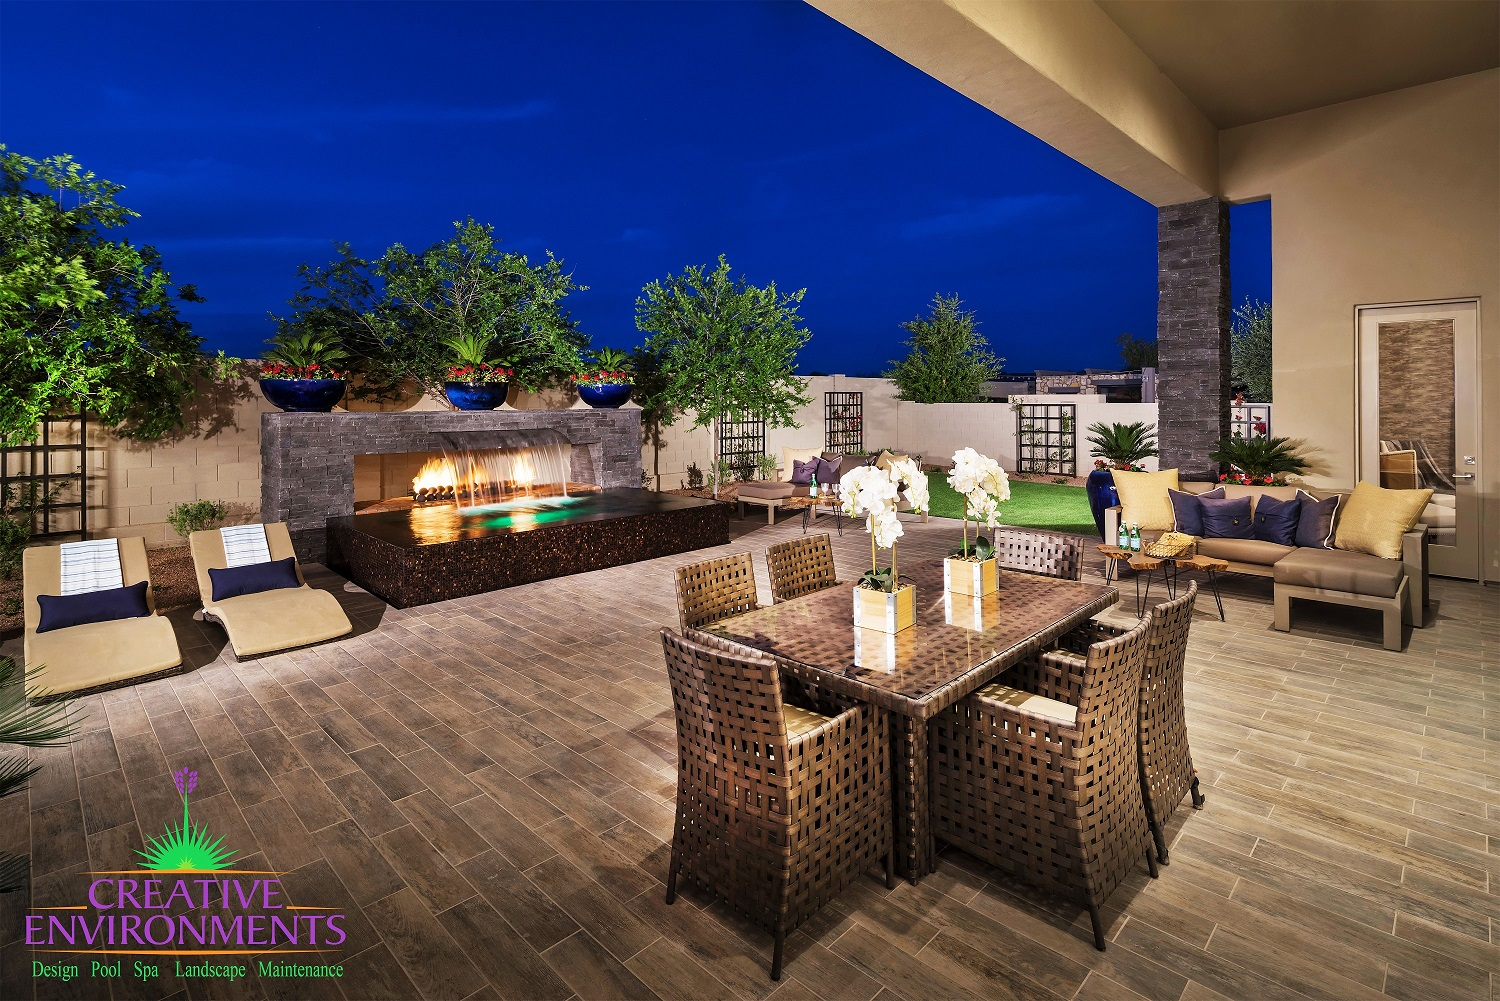 Extended patio area with outdoor dining and zero edge pool with waterfall